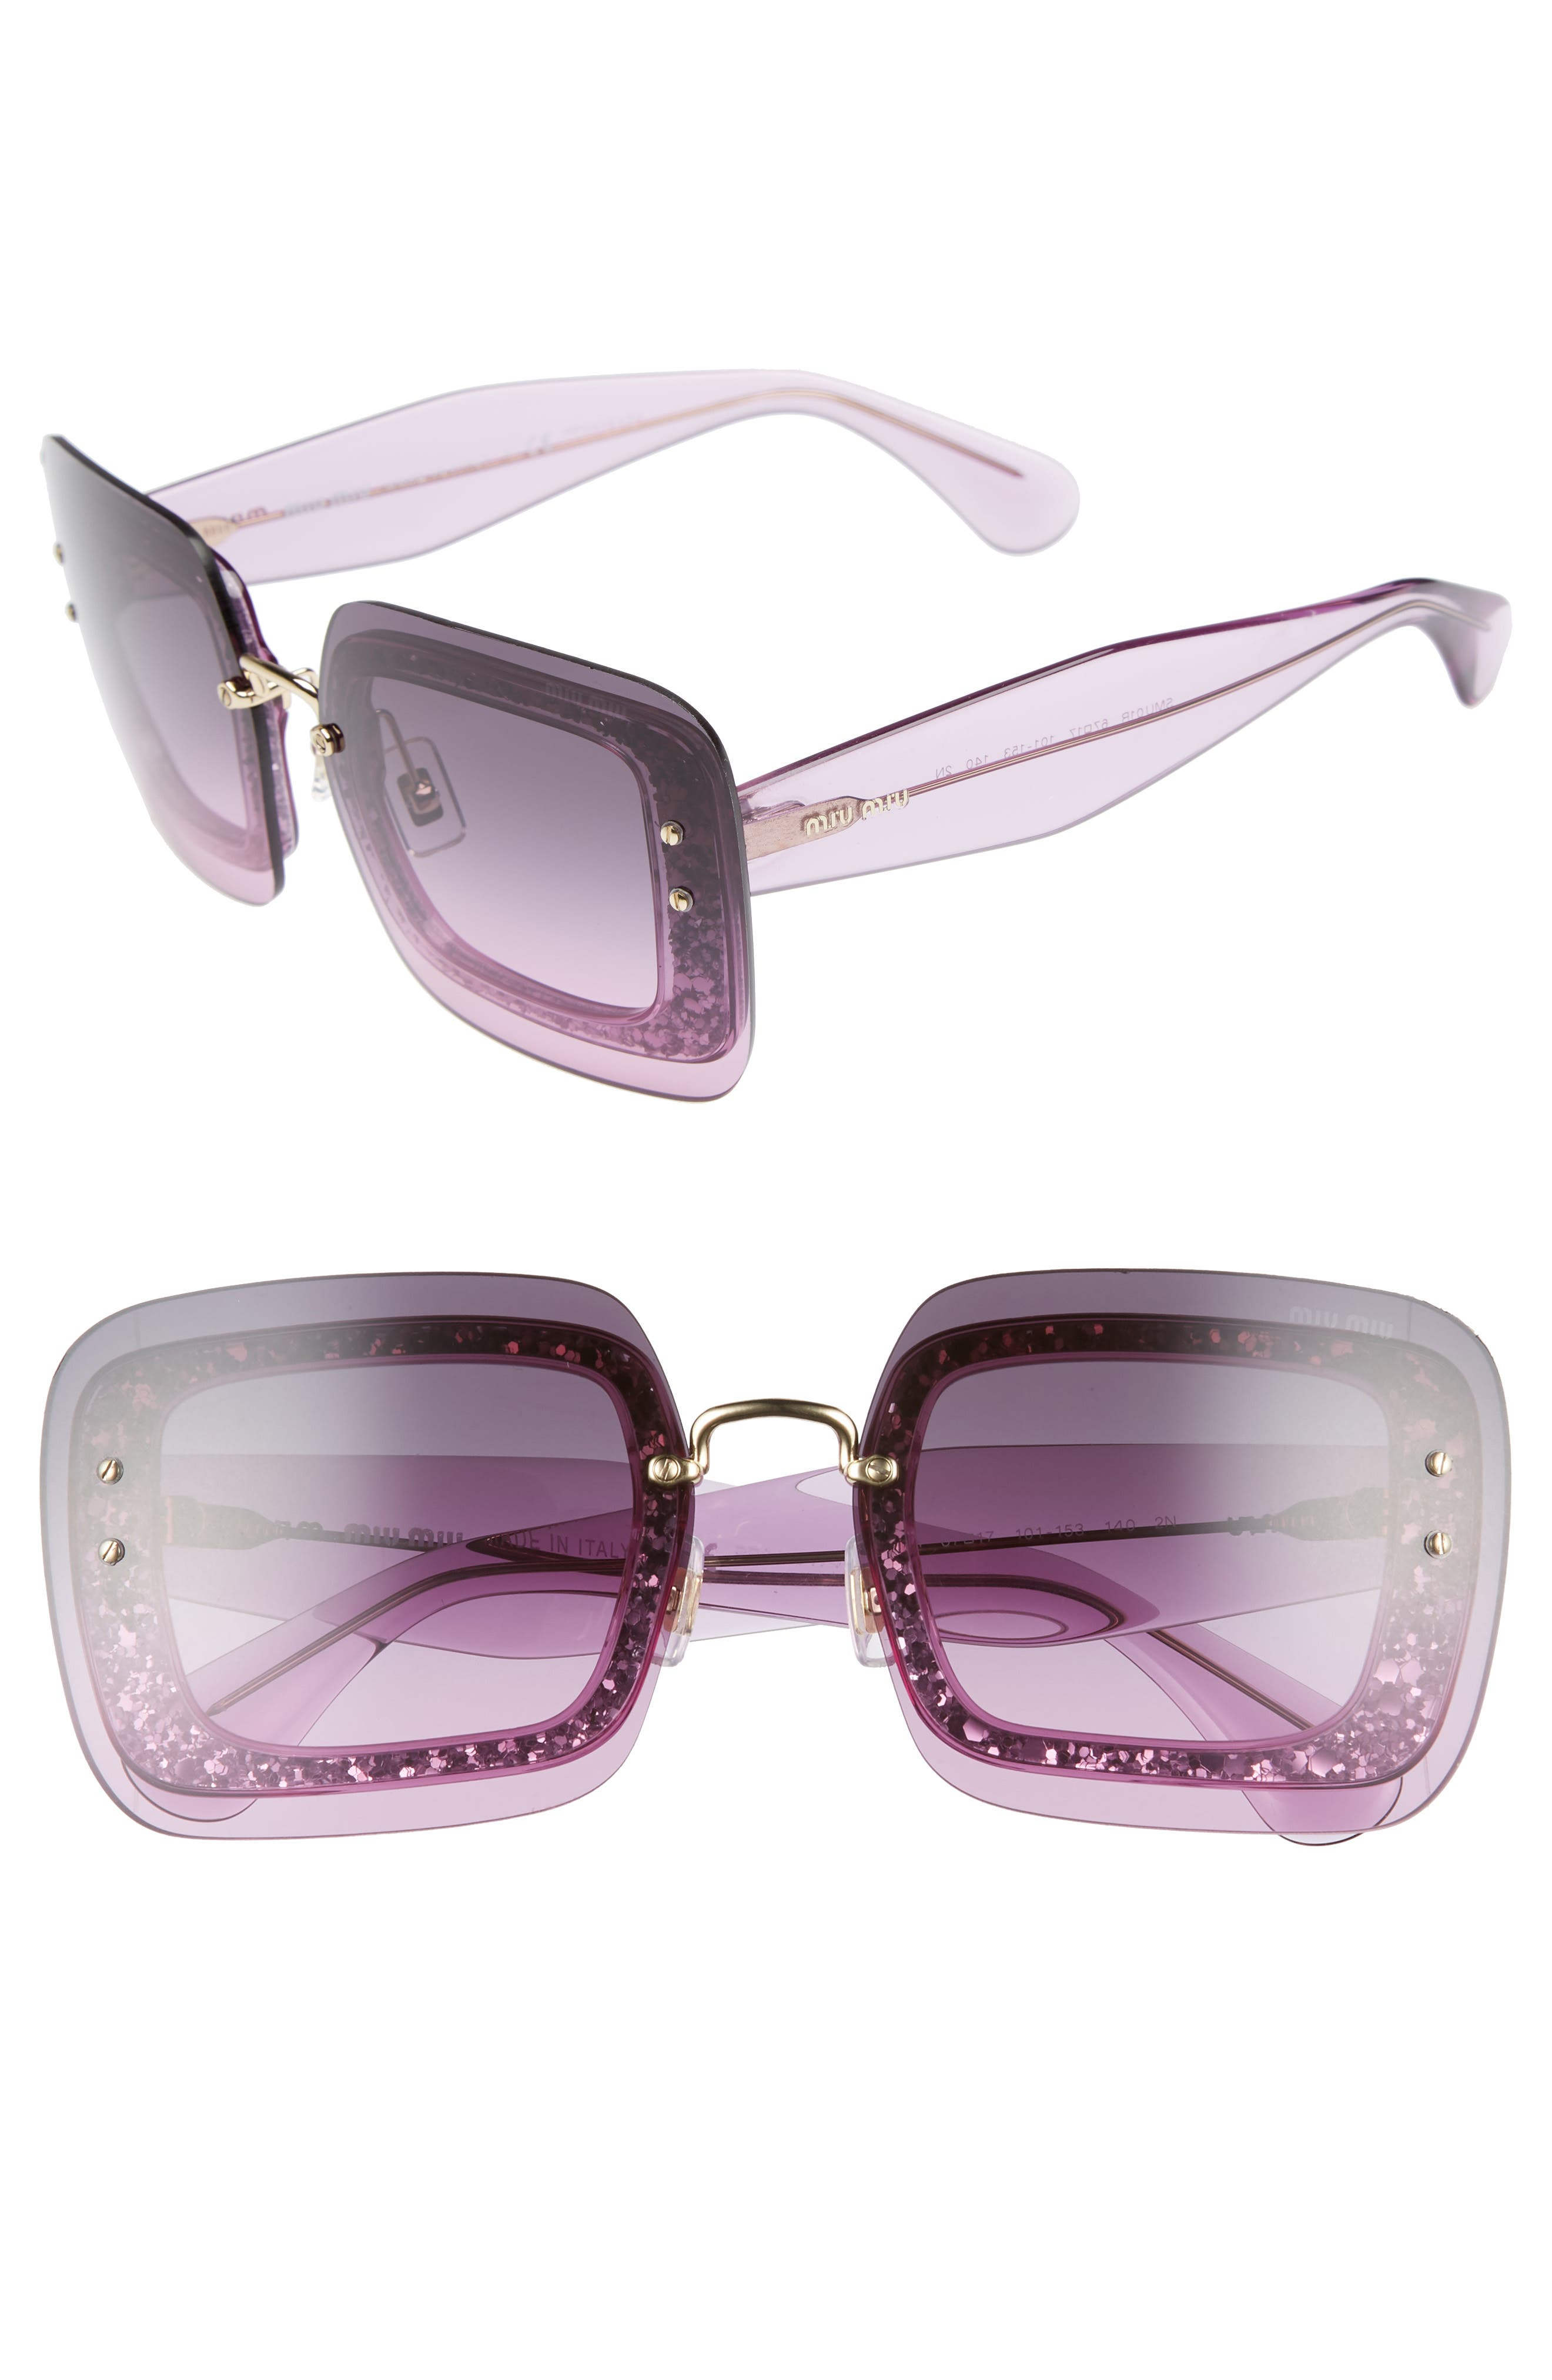 b797d4c813a3 miu miu square frame sunglasses & eyewear for women - Buy best women's miu  miu square frame sunglasses & eyewear on Cools.com Shop